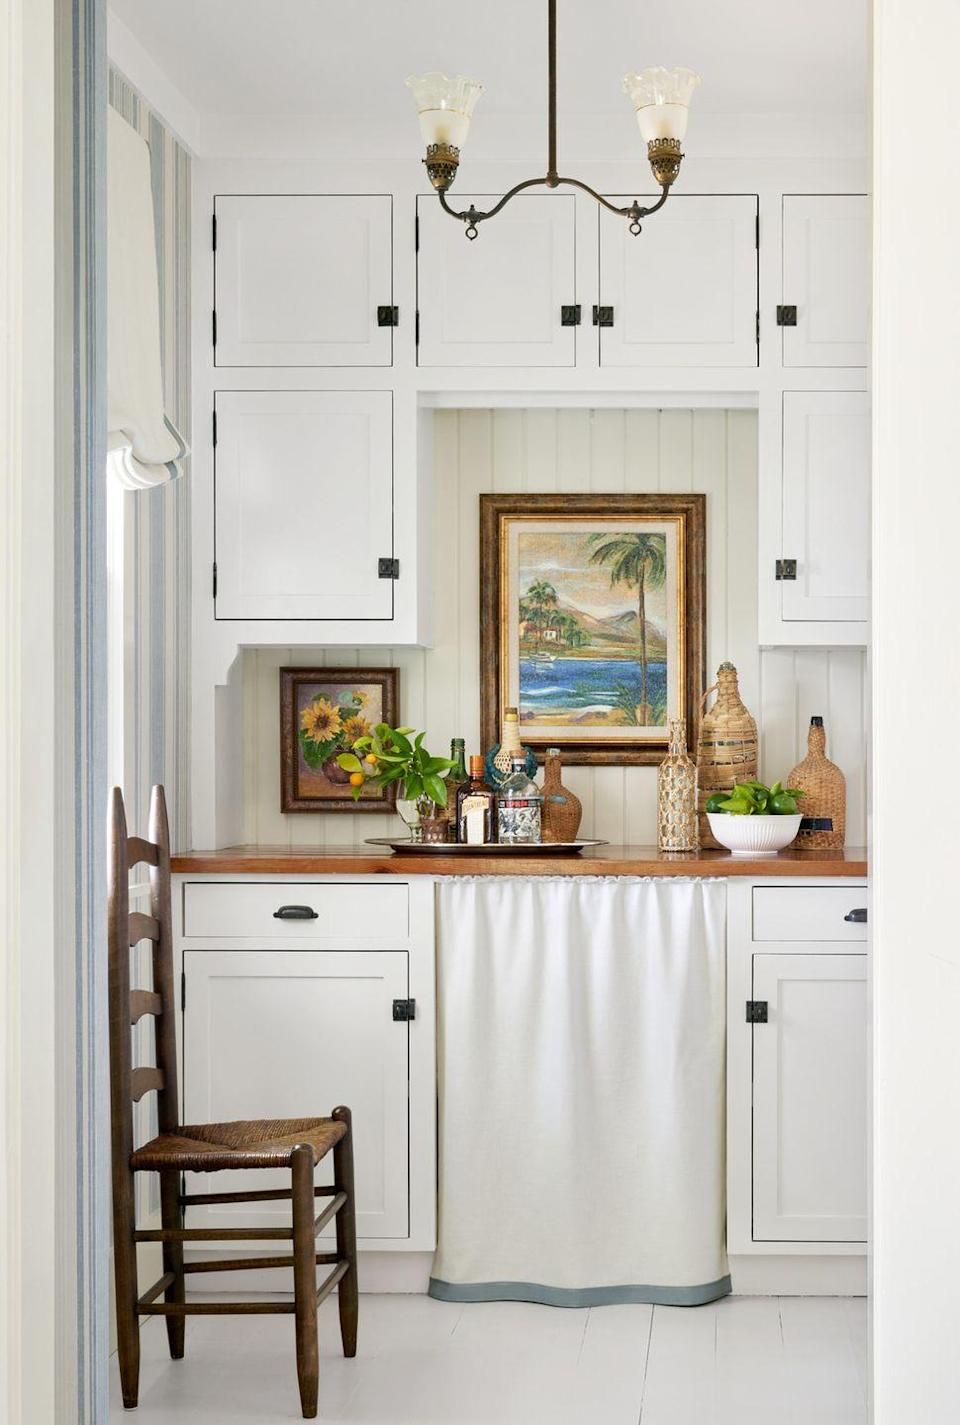 <p>In small kitchens or pantries, hefty stainless steel appliances tend to overpower the room. An easy fix (for ice makers or sinks needing hidden storage) is a simple skirt, like the blue-trimmed one here. You can easily replicate this look with just a yard of fabric and a tension rod.</p>